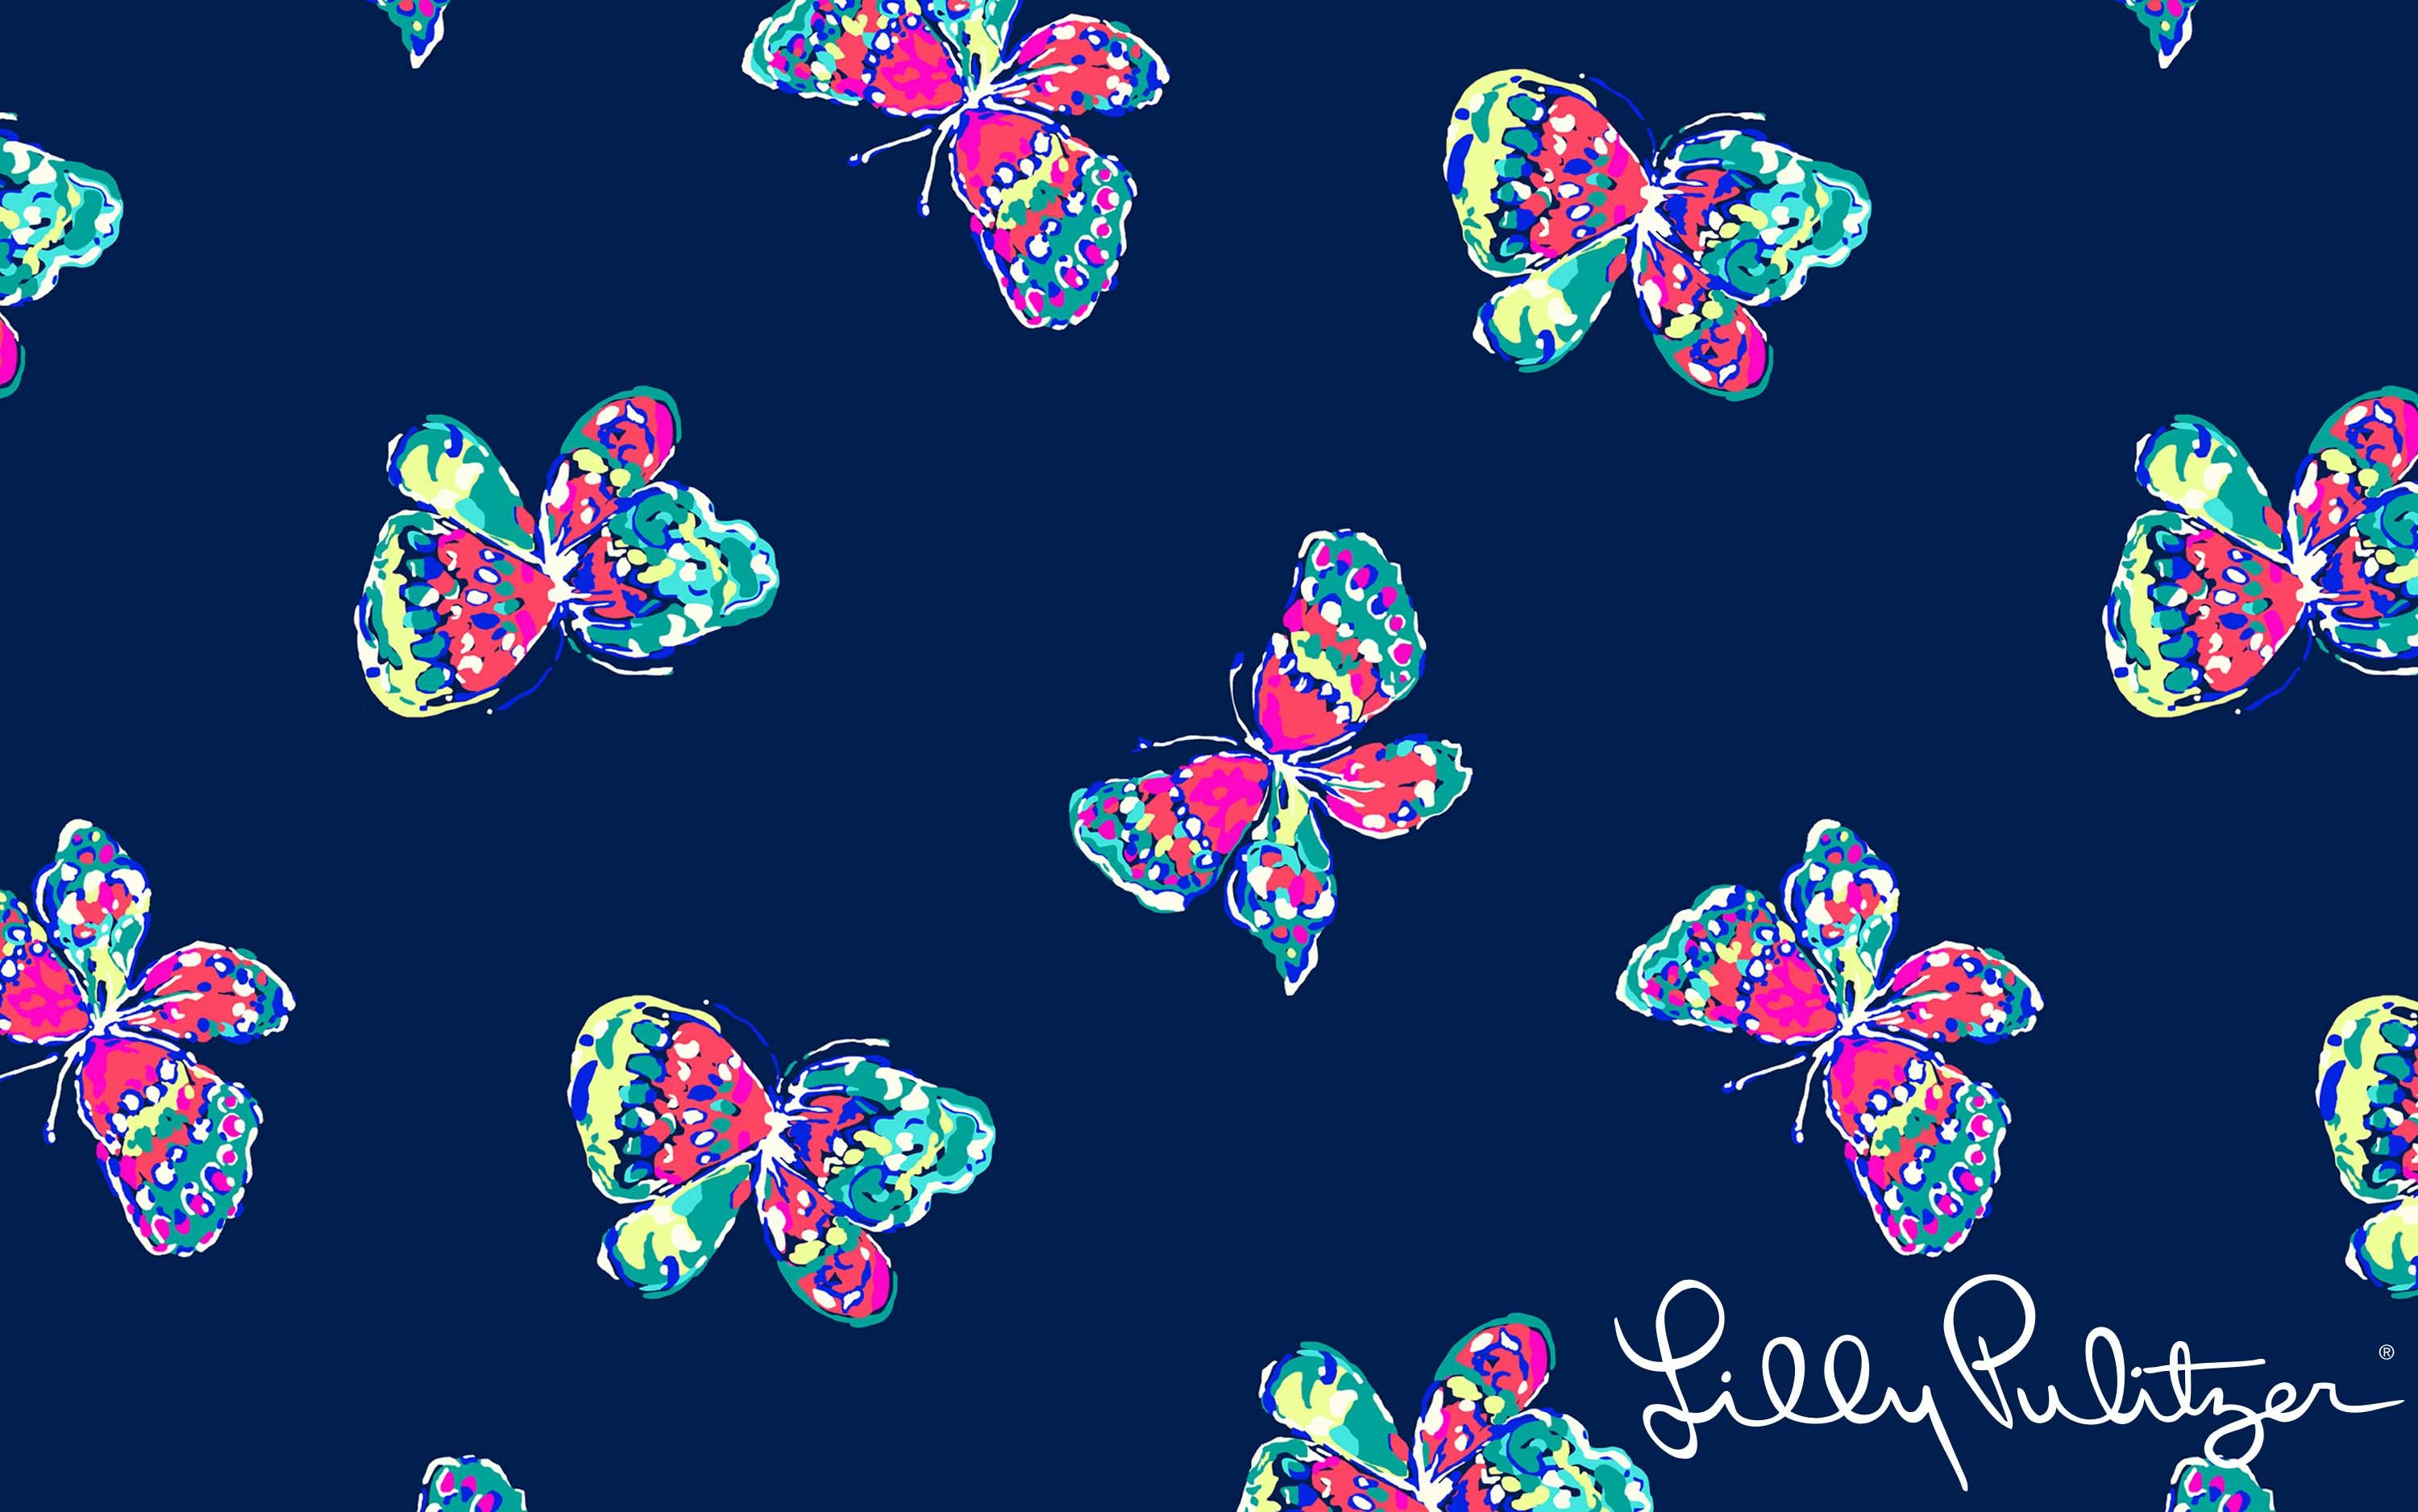 Fall Lilly Pulitzer Wallpaper Lilly Pulitzer On Pinterest Lilly Pulitzer Desktop